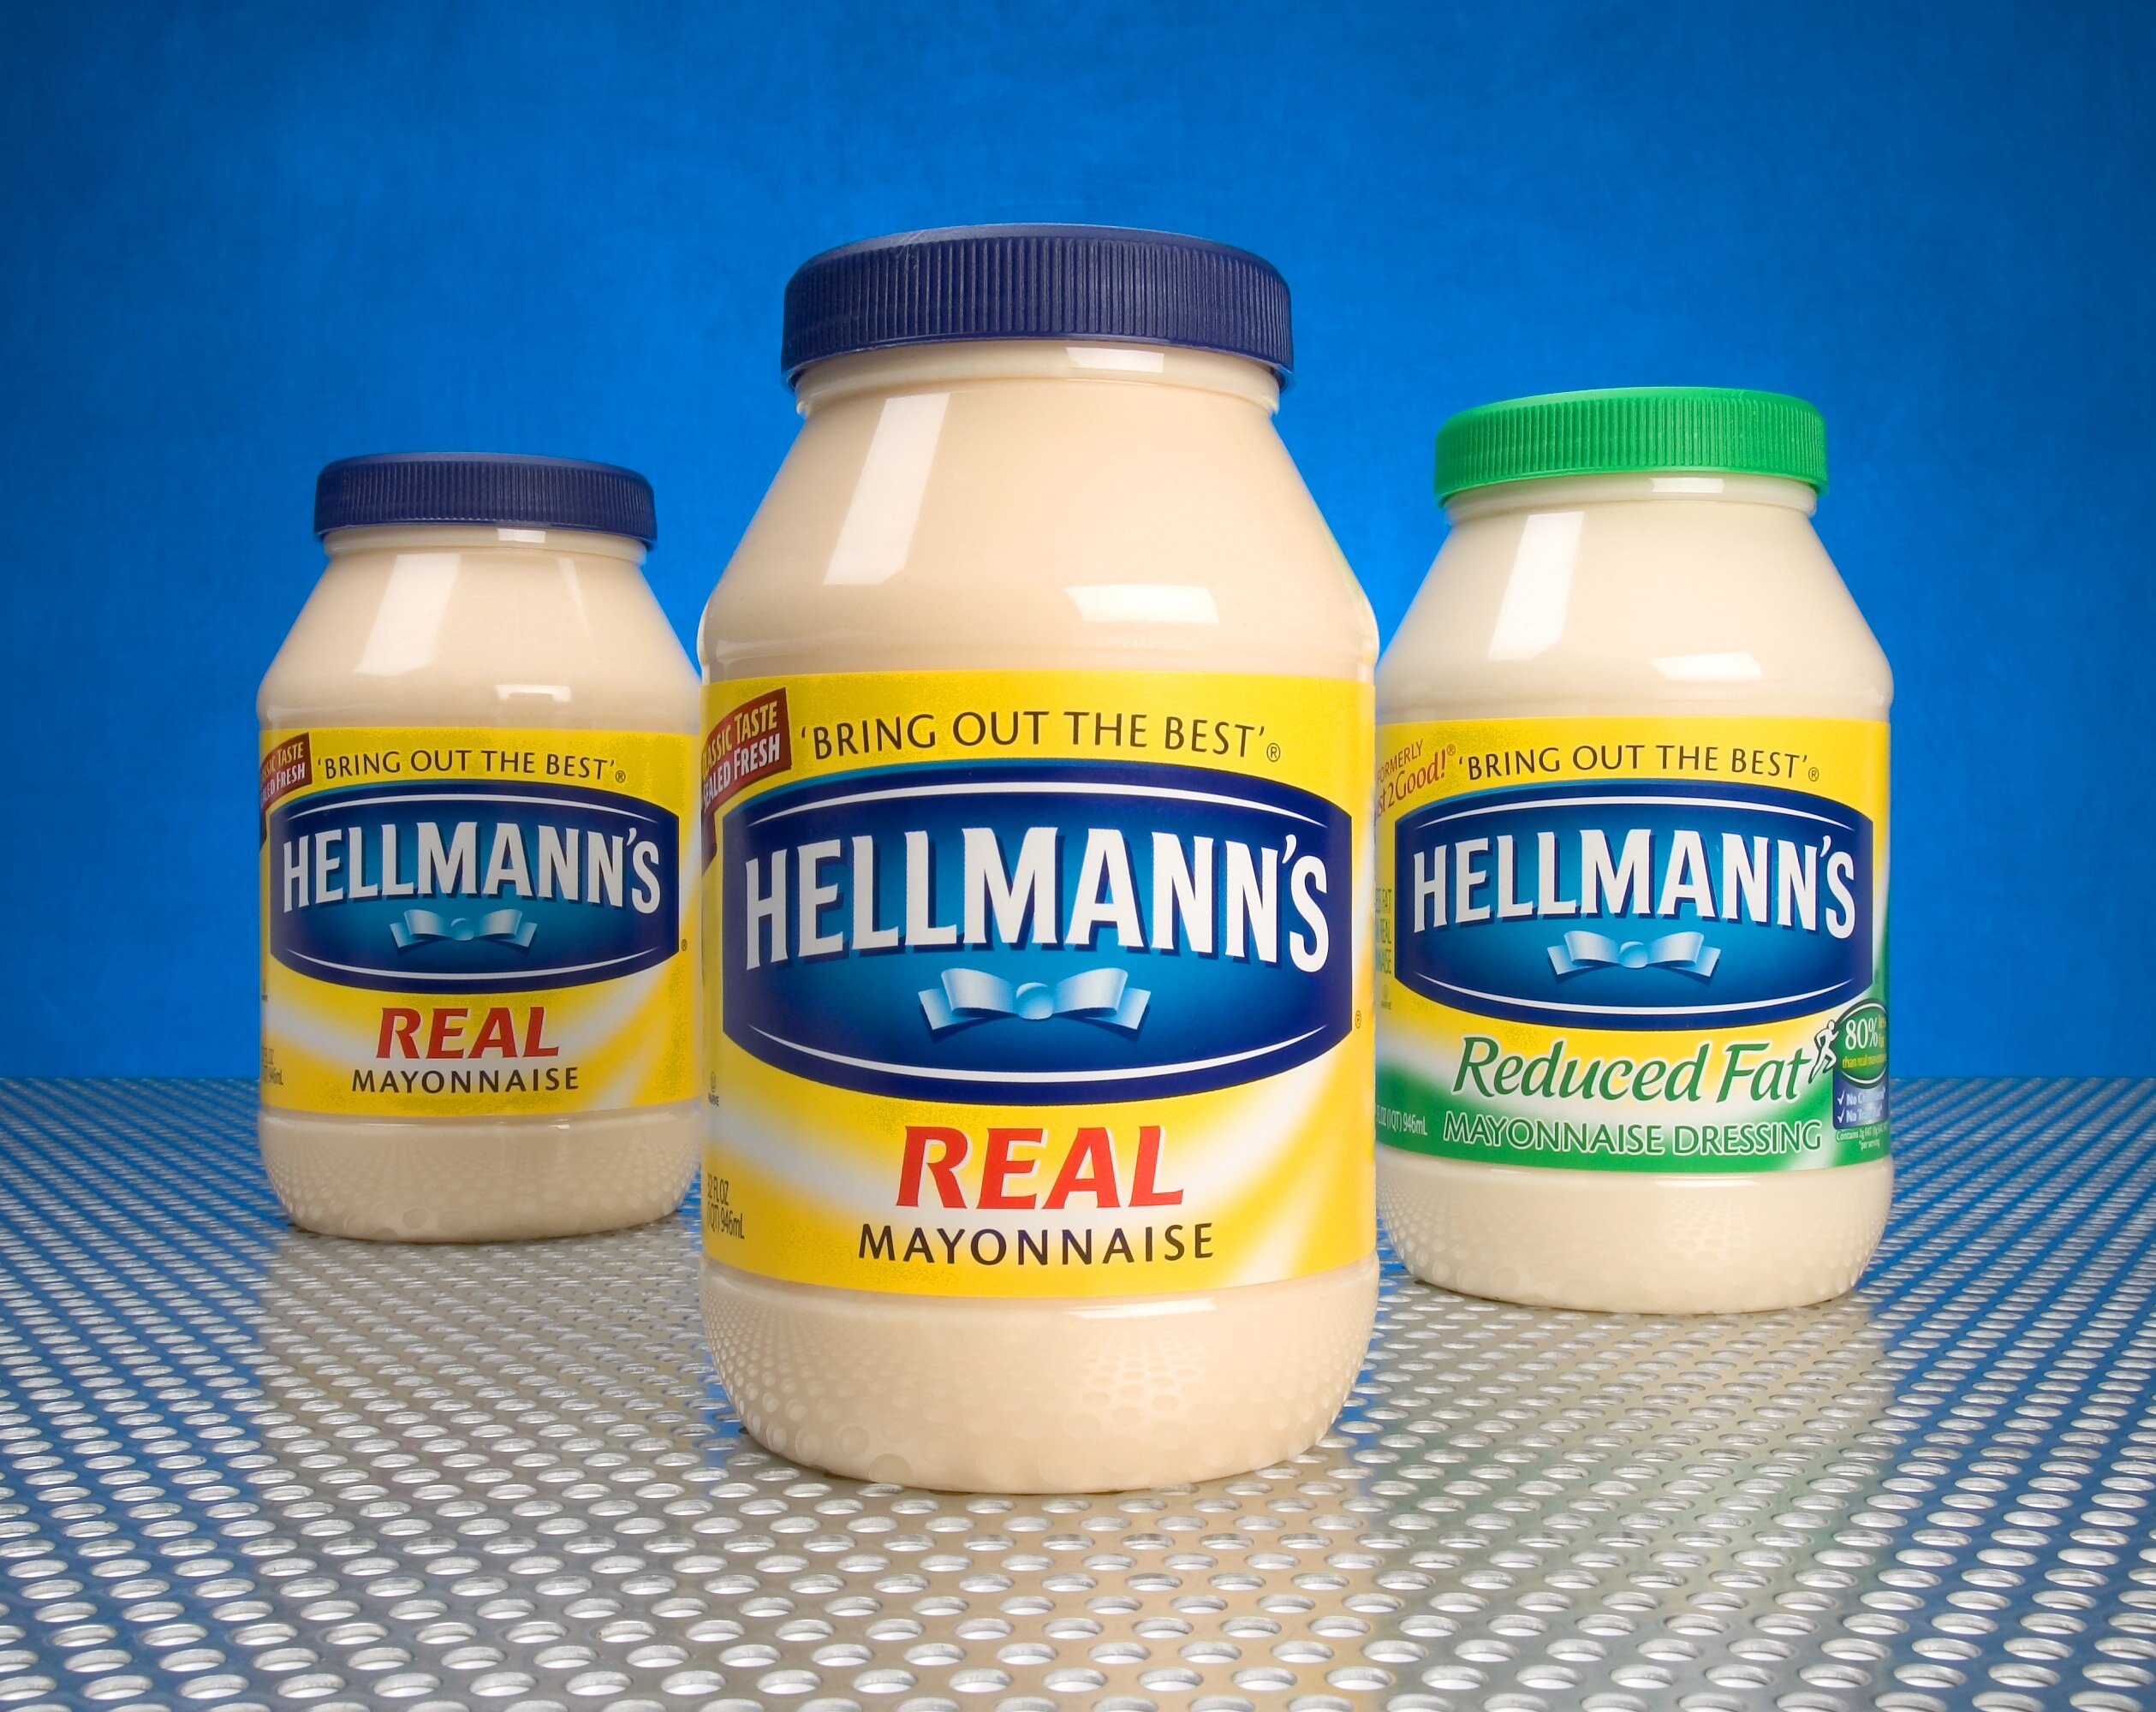 *NEW* .75 cents off Hellman's Coupon through Save.ca